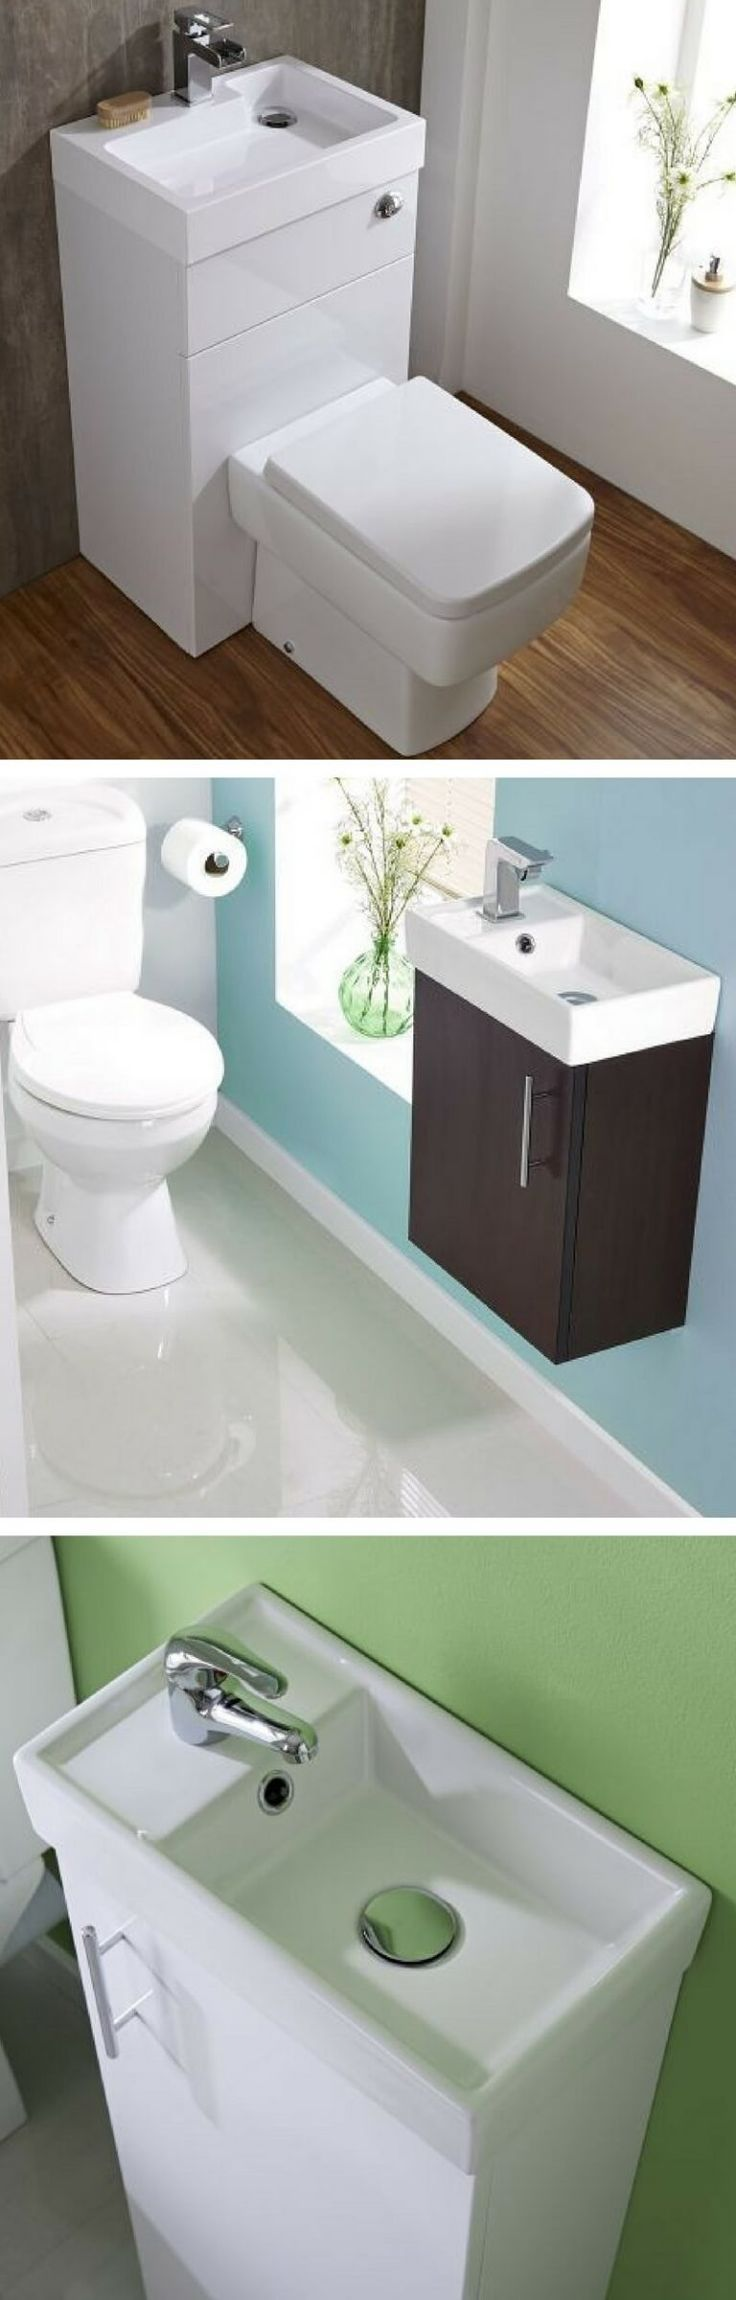 Why a cloakroom basin is essential for a small bathroom makeover. Cloakroom basins & vanity units are perfect for small bathroom makeovers. With so many styles of sink available, only the space is limited not your options.